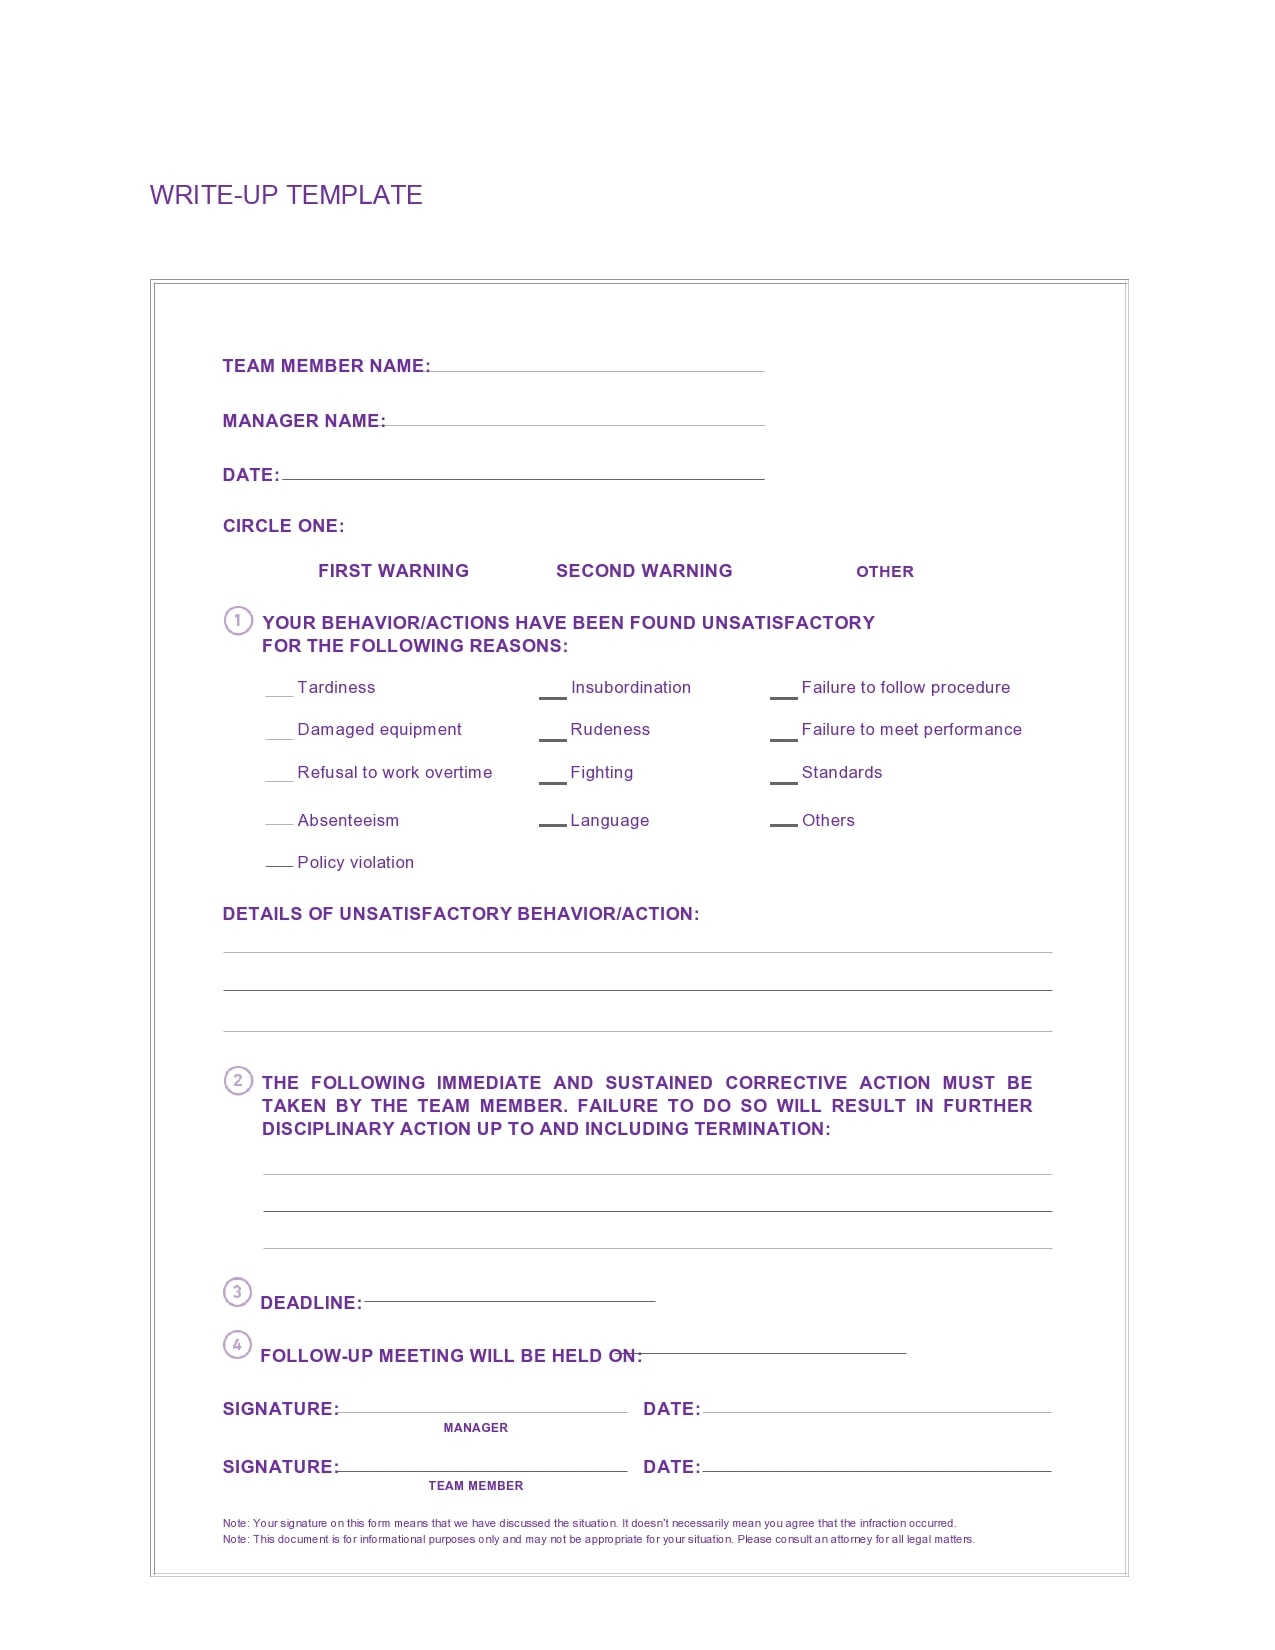 employee write up form 02